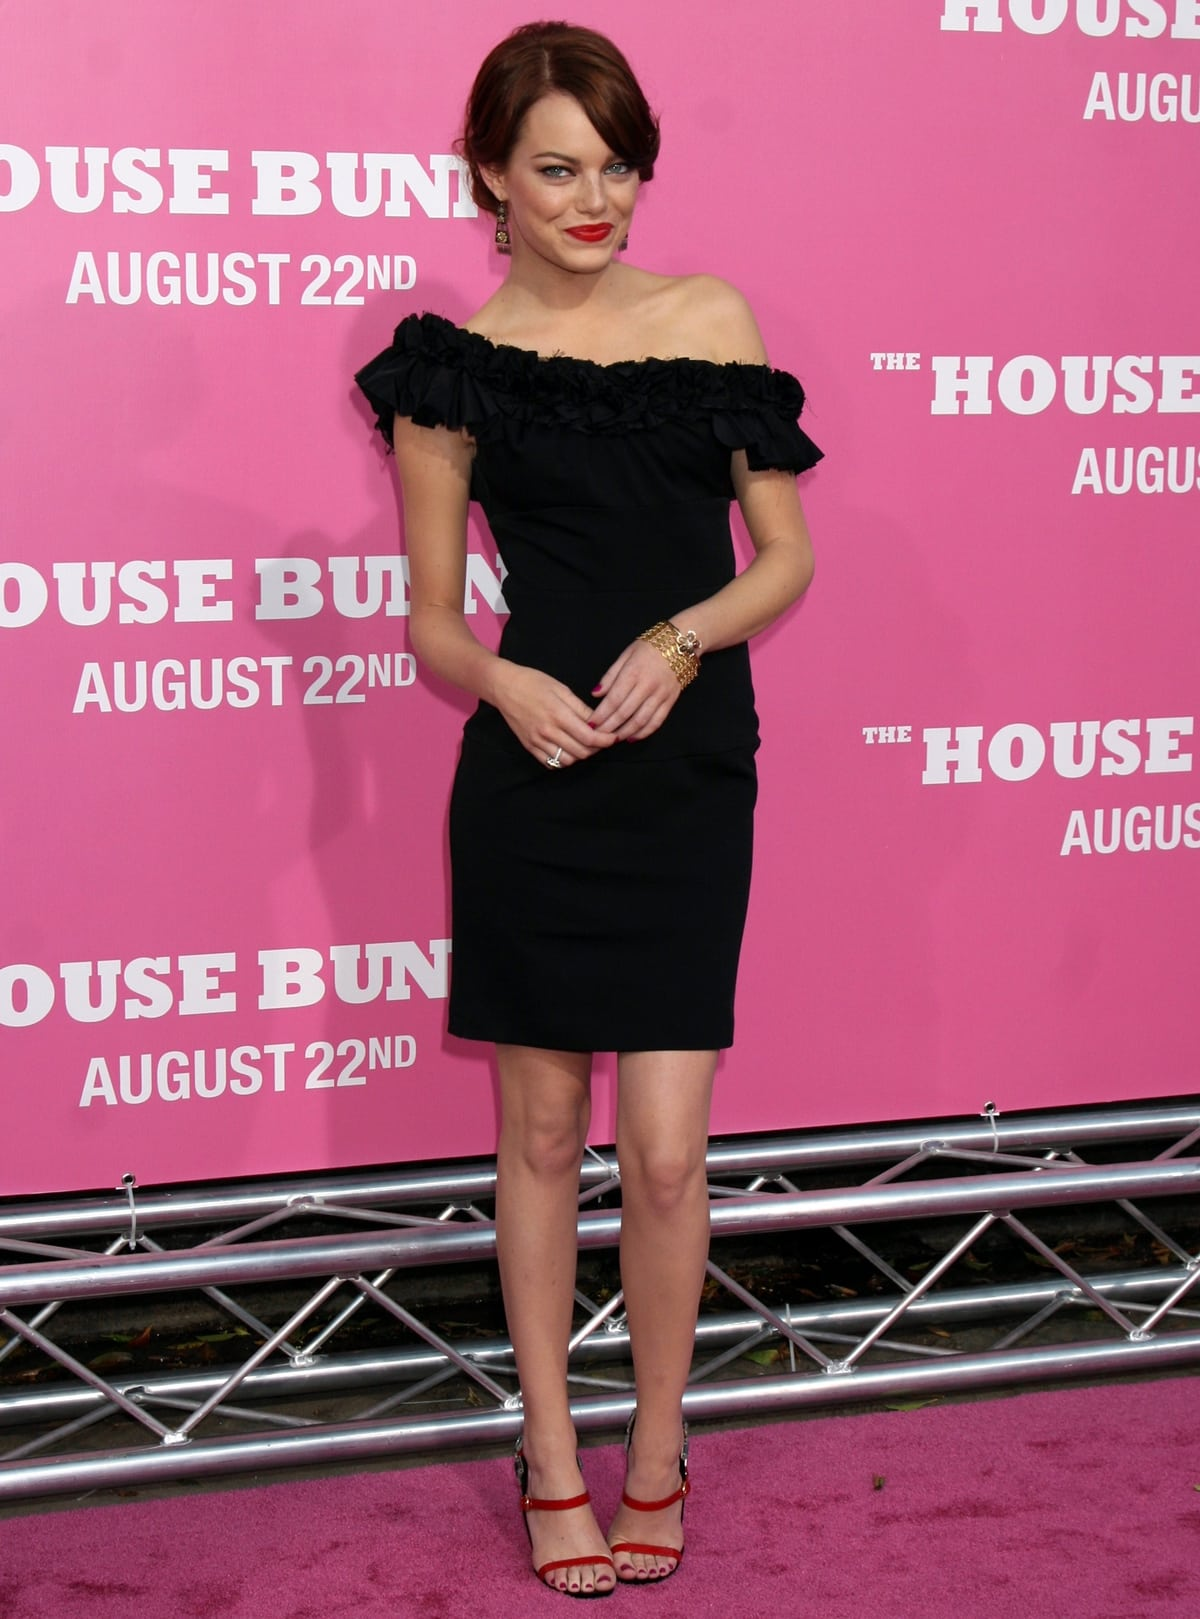 """Actress Emma Stone in a black dress at Sony Pictures' Premiere of """"House Bunny"""""""